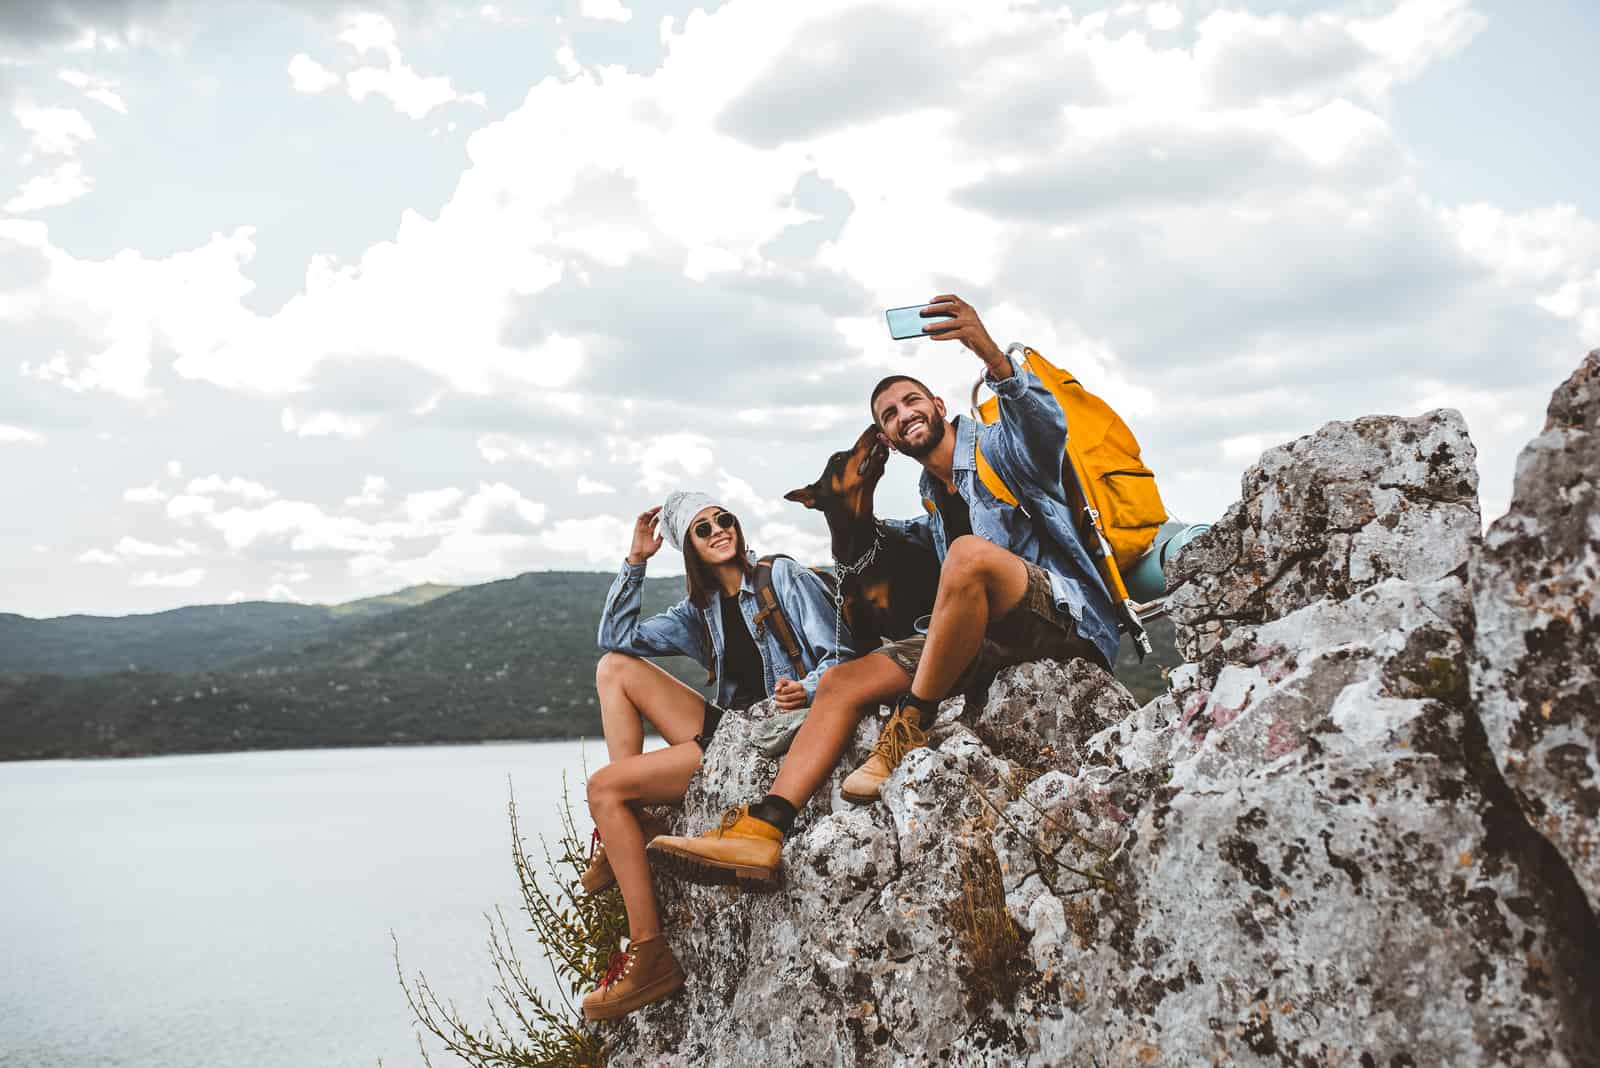 Hikers with backpacks and their doberman sitting